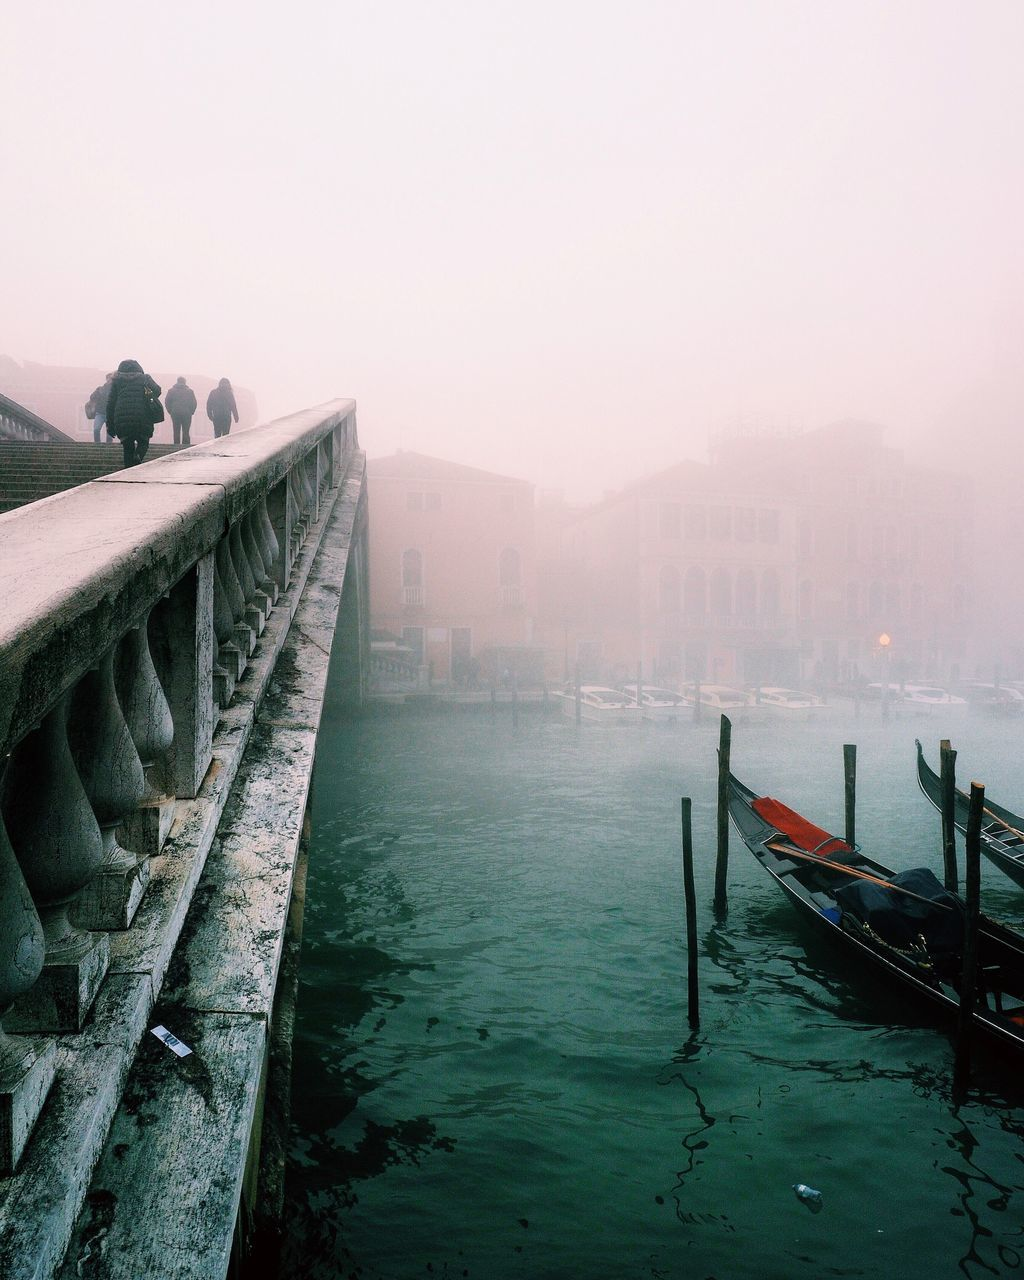 fog, water, outdoors, architecture, built structure, nature, transportation, day, nautical vessel, no people, building exterior, beauty in nature, sky, gondola - traditional boat